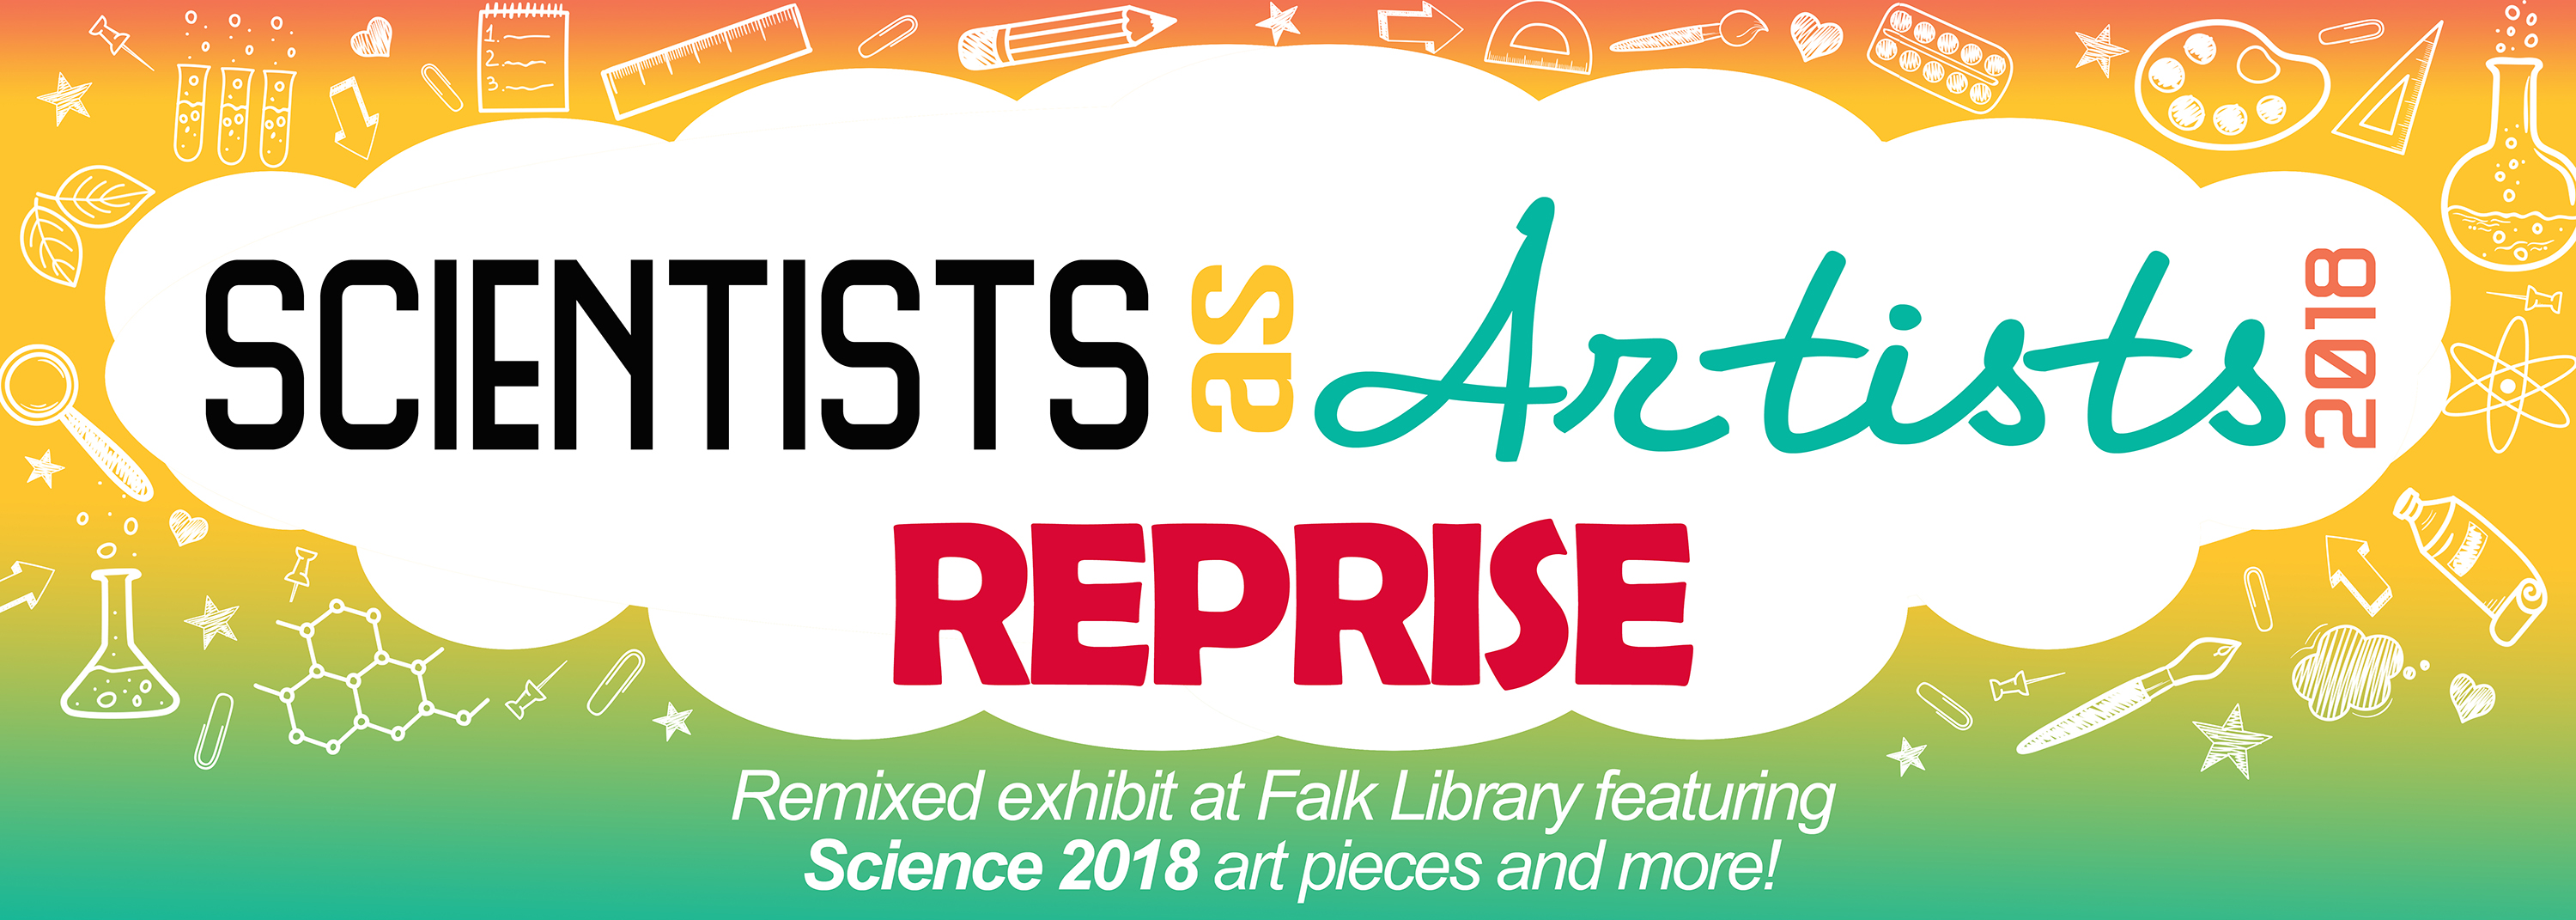 Scientists as Artists Reprise: Remixed Exhibit featuring Science 2018 art pieces and more!